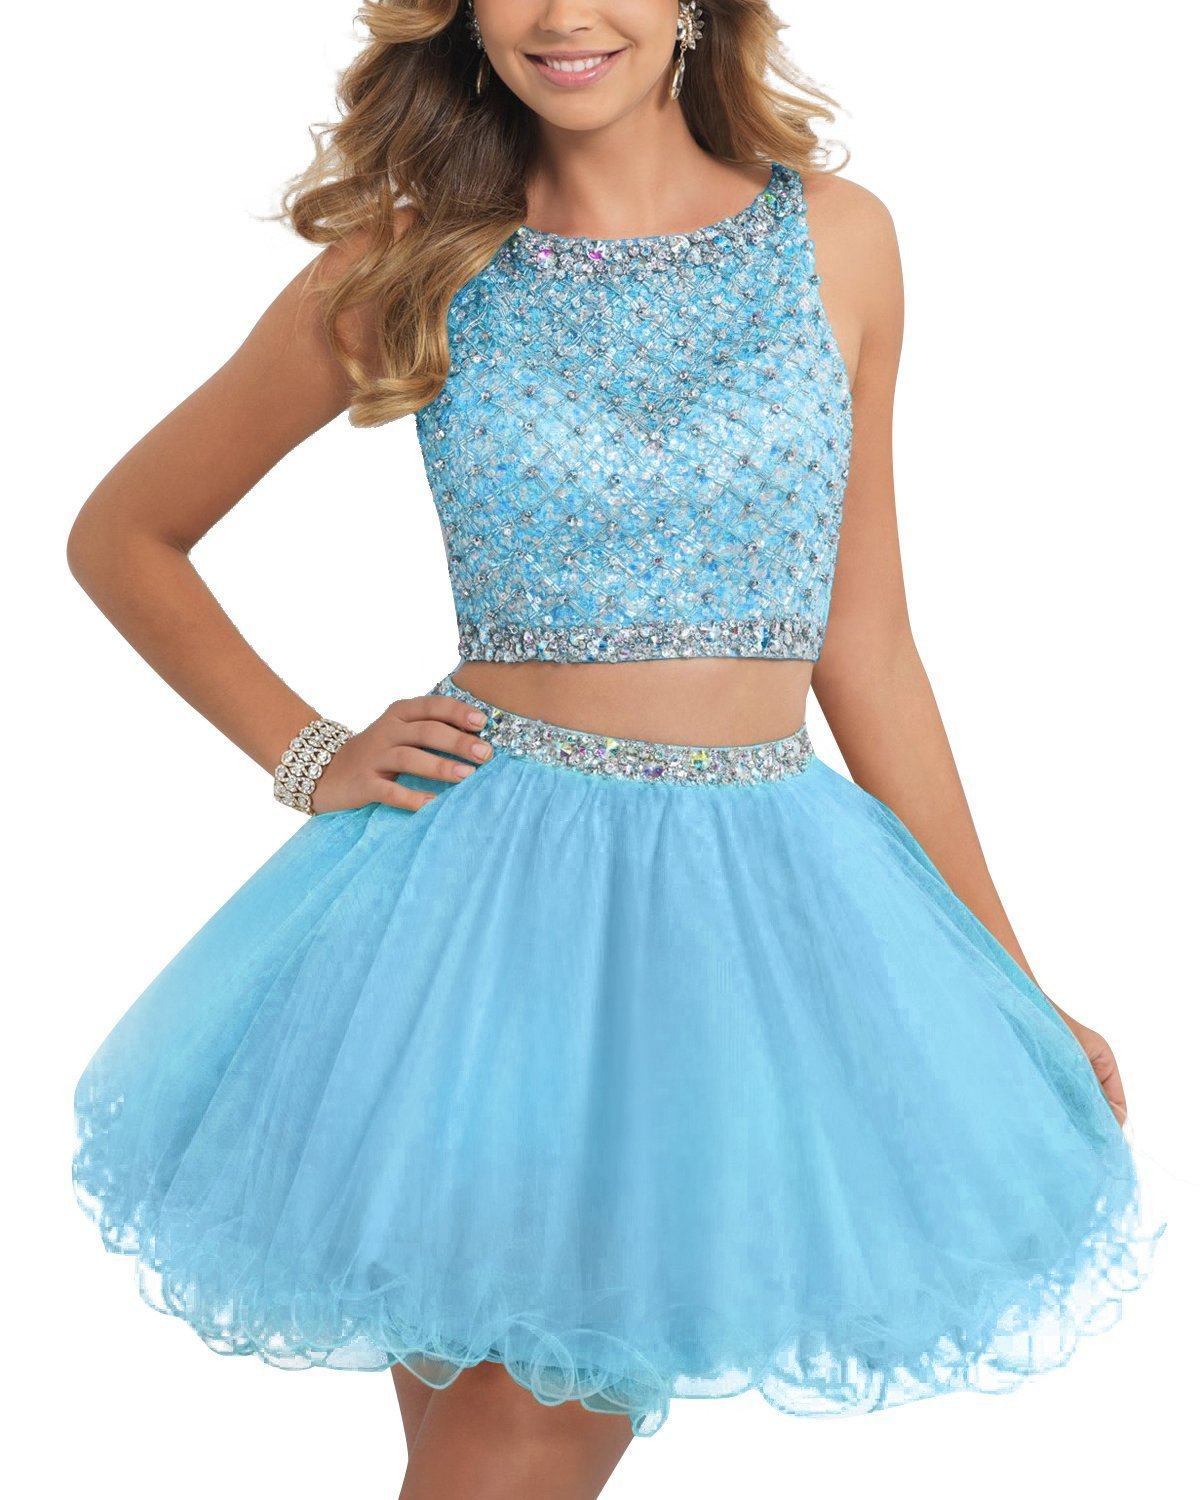 TANGFUTI Two Piece Homecoming Dresses Short Beaded Tulle Formal Prom Gowns 010 Sky Blue US4